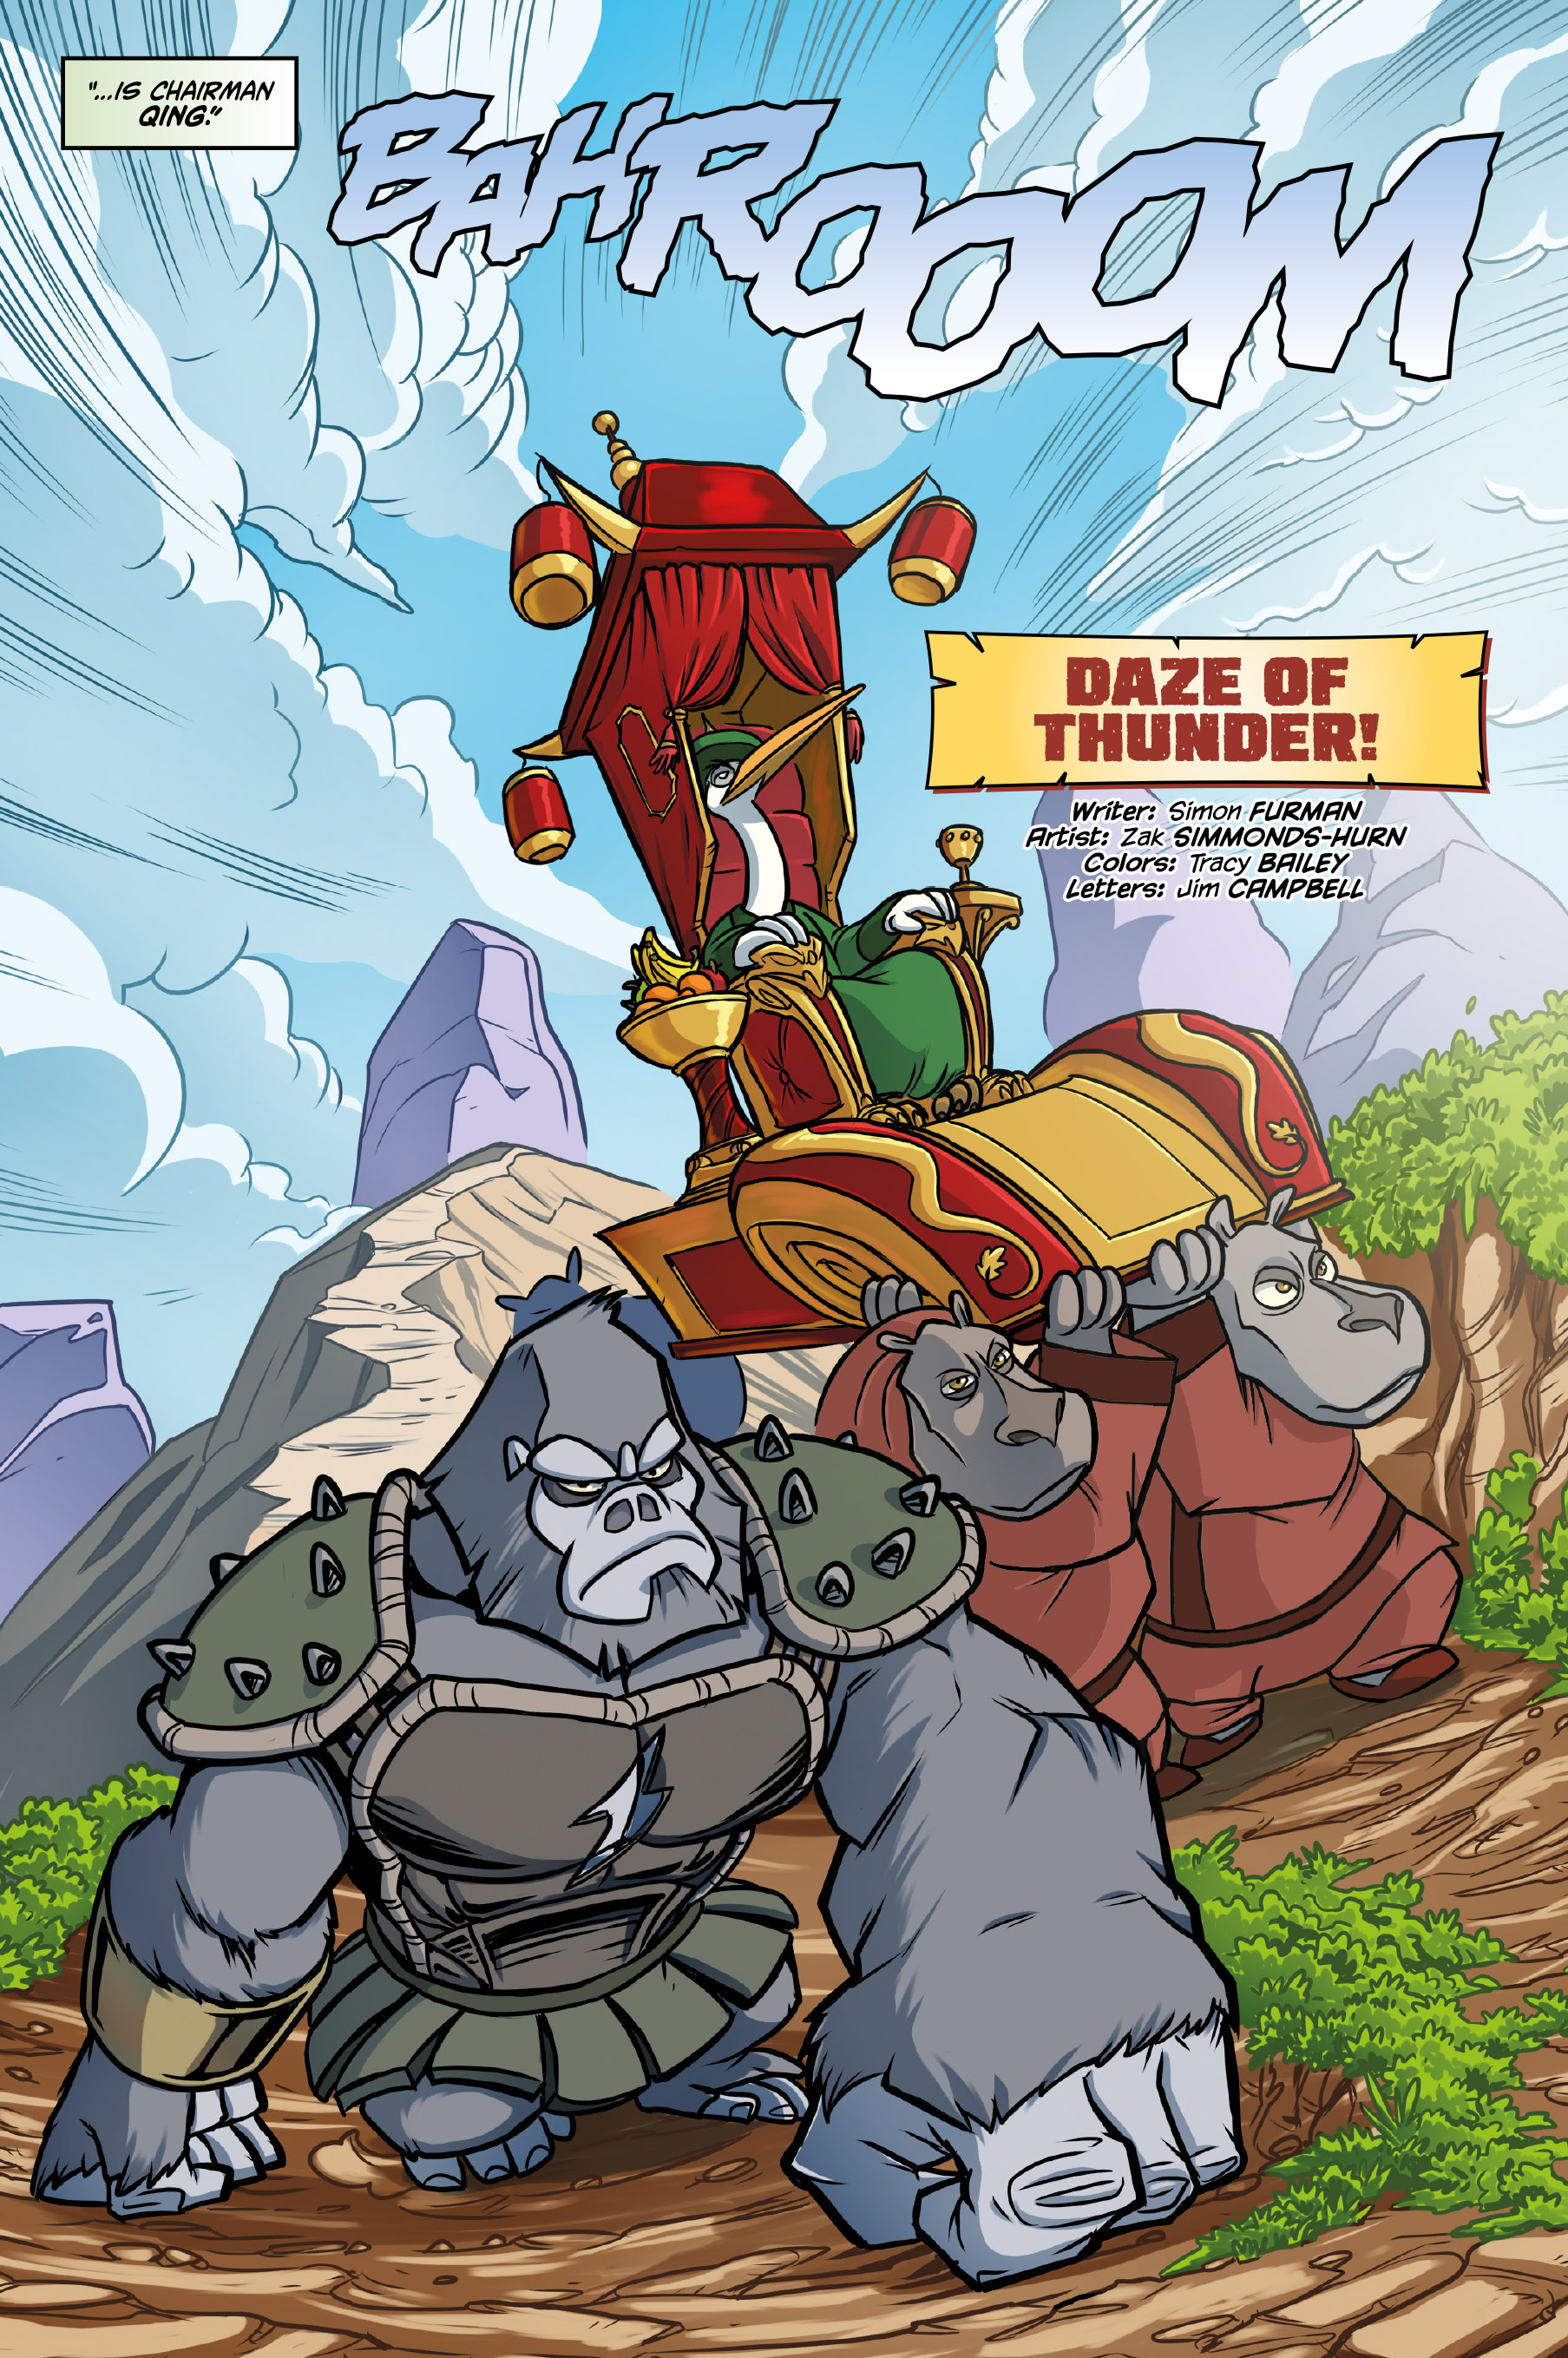 Comic Book Preview Kung Fu Panda Daze Of Thunder